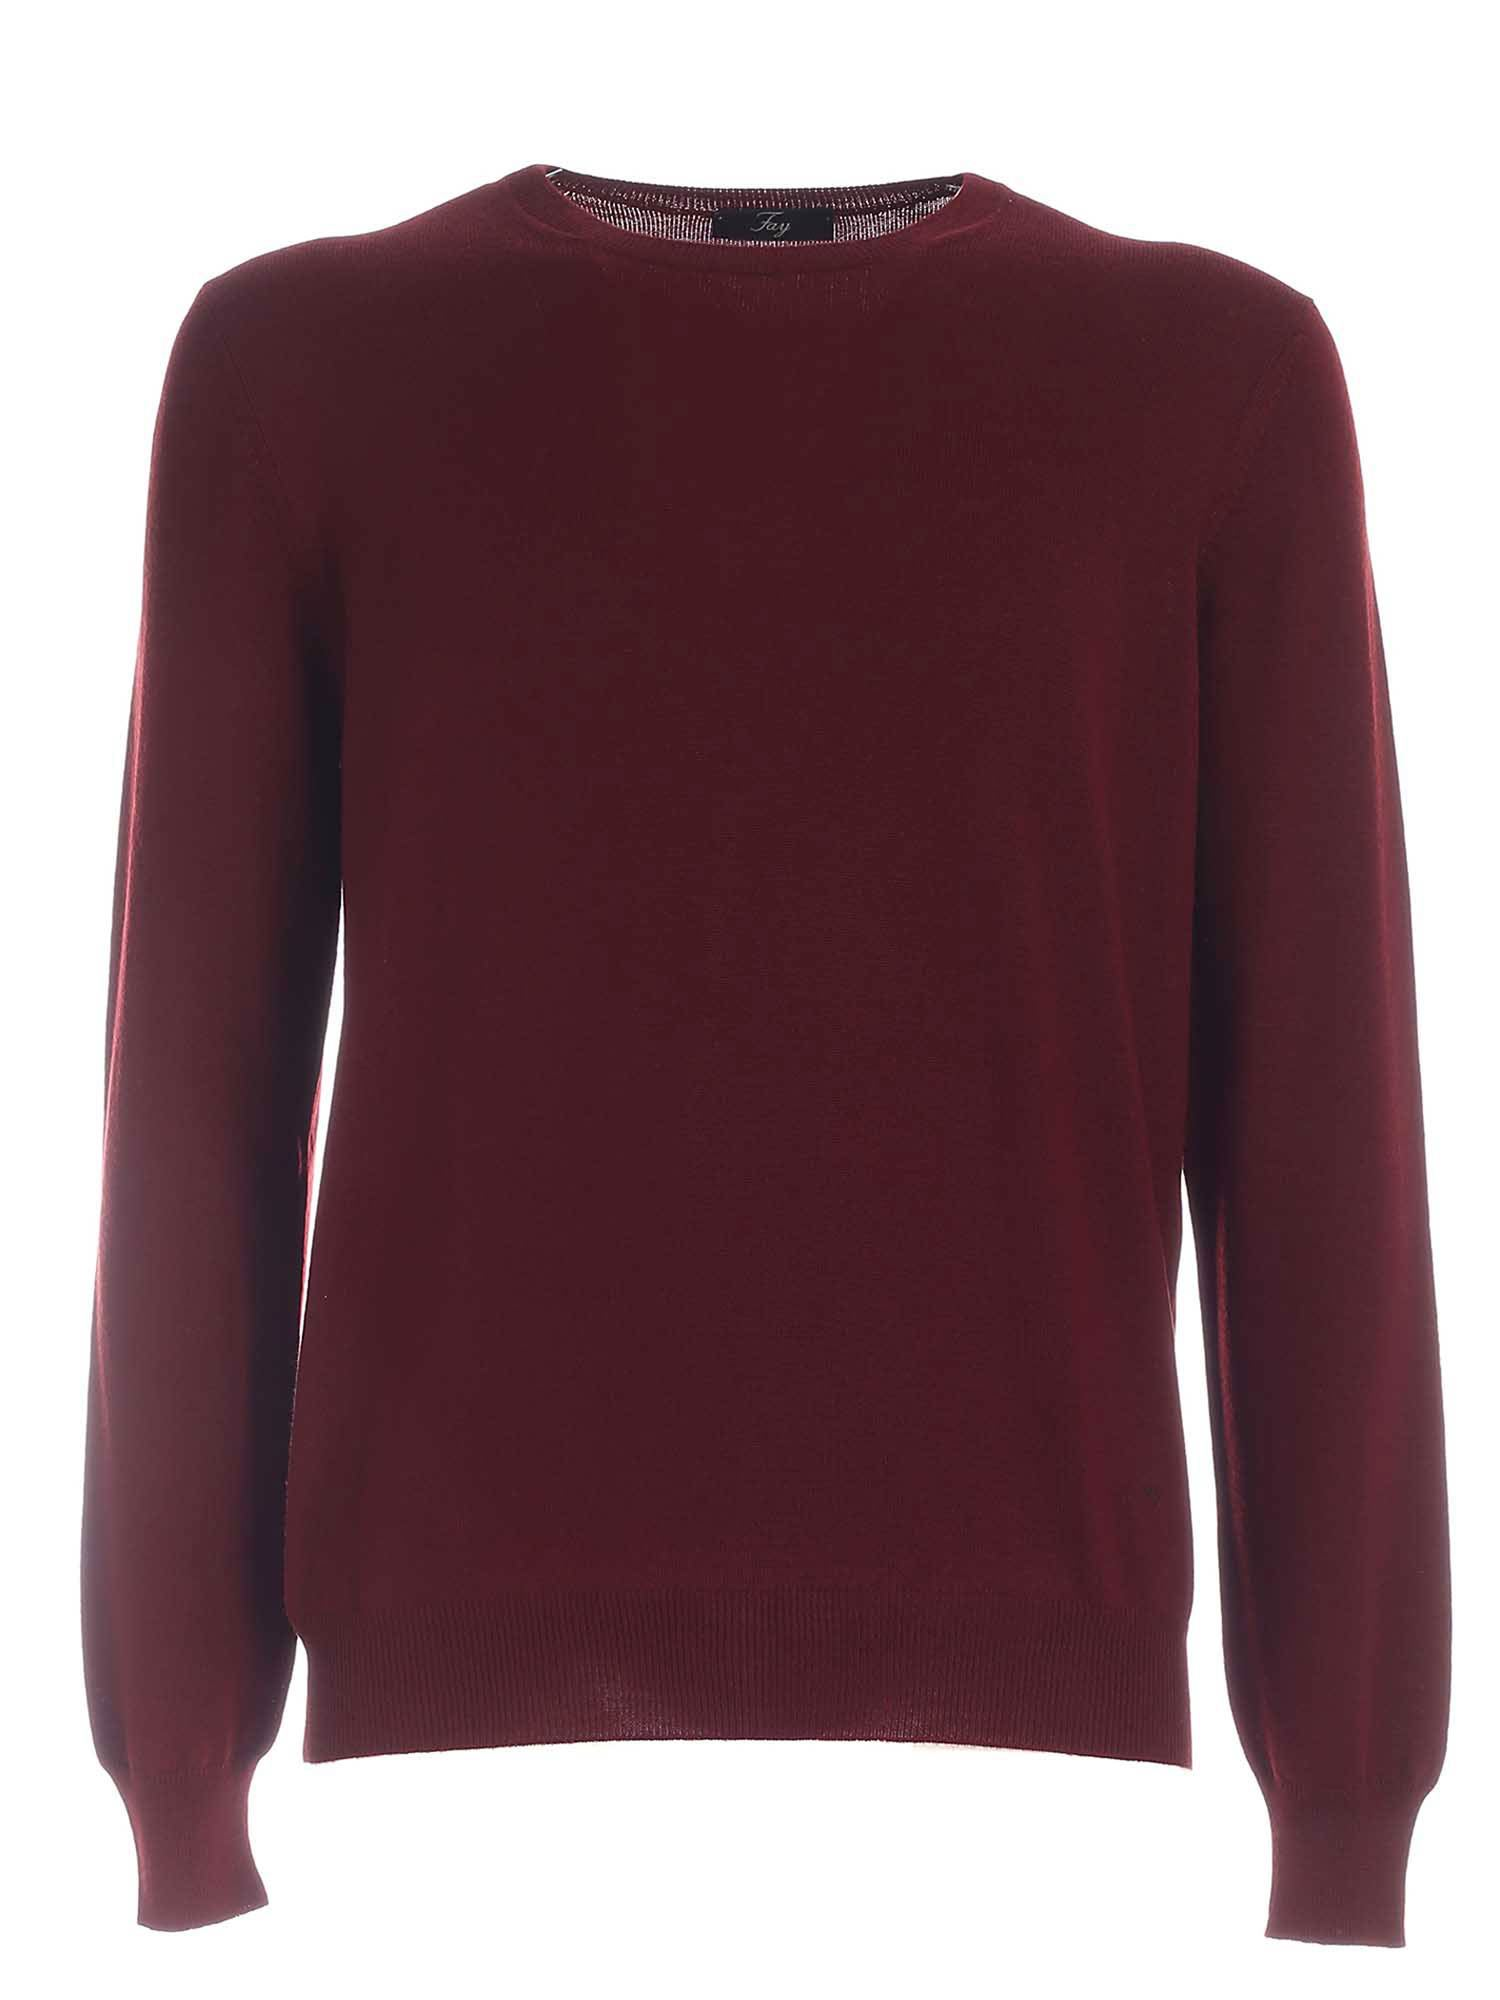 Fay Logo Embroidery Wool Crewneck Jumper In Red In Burgundy